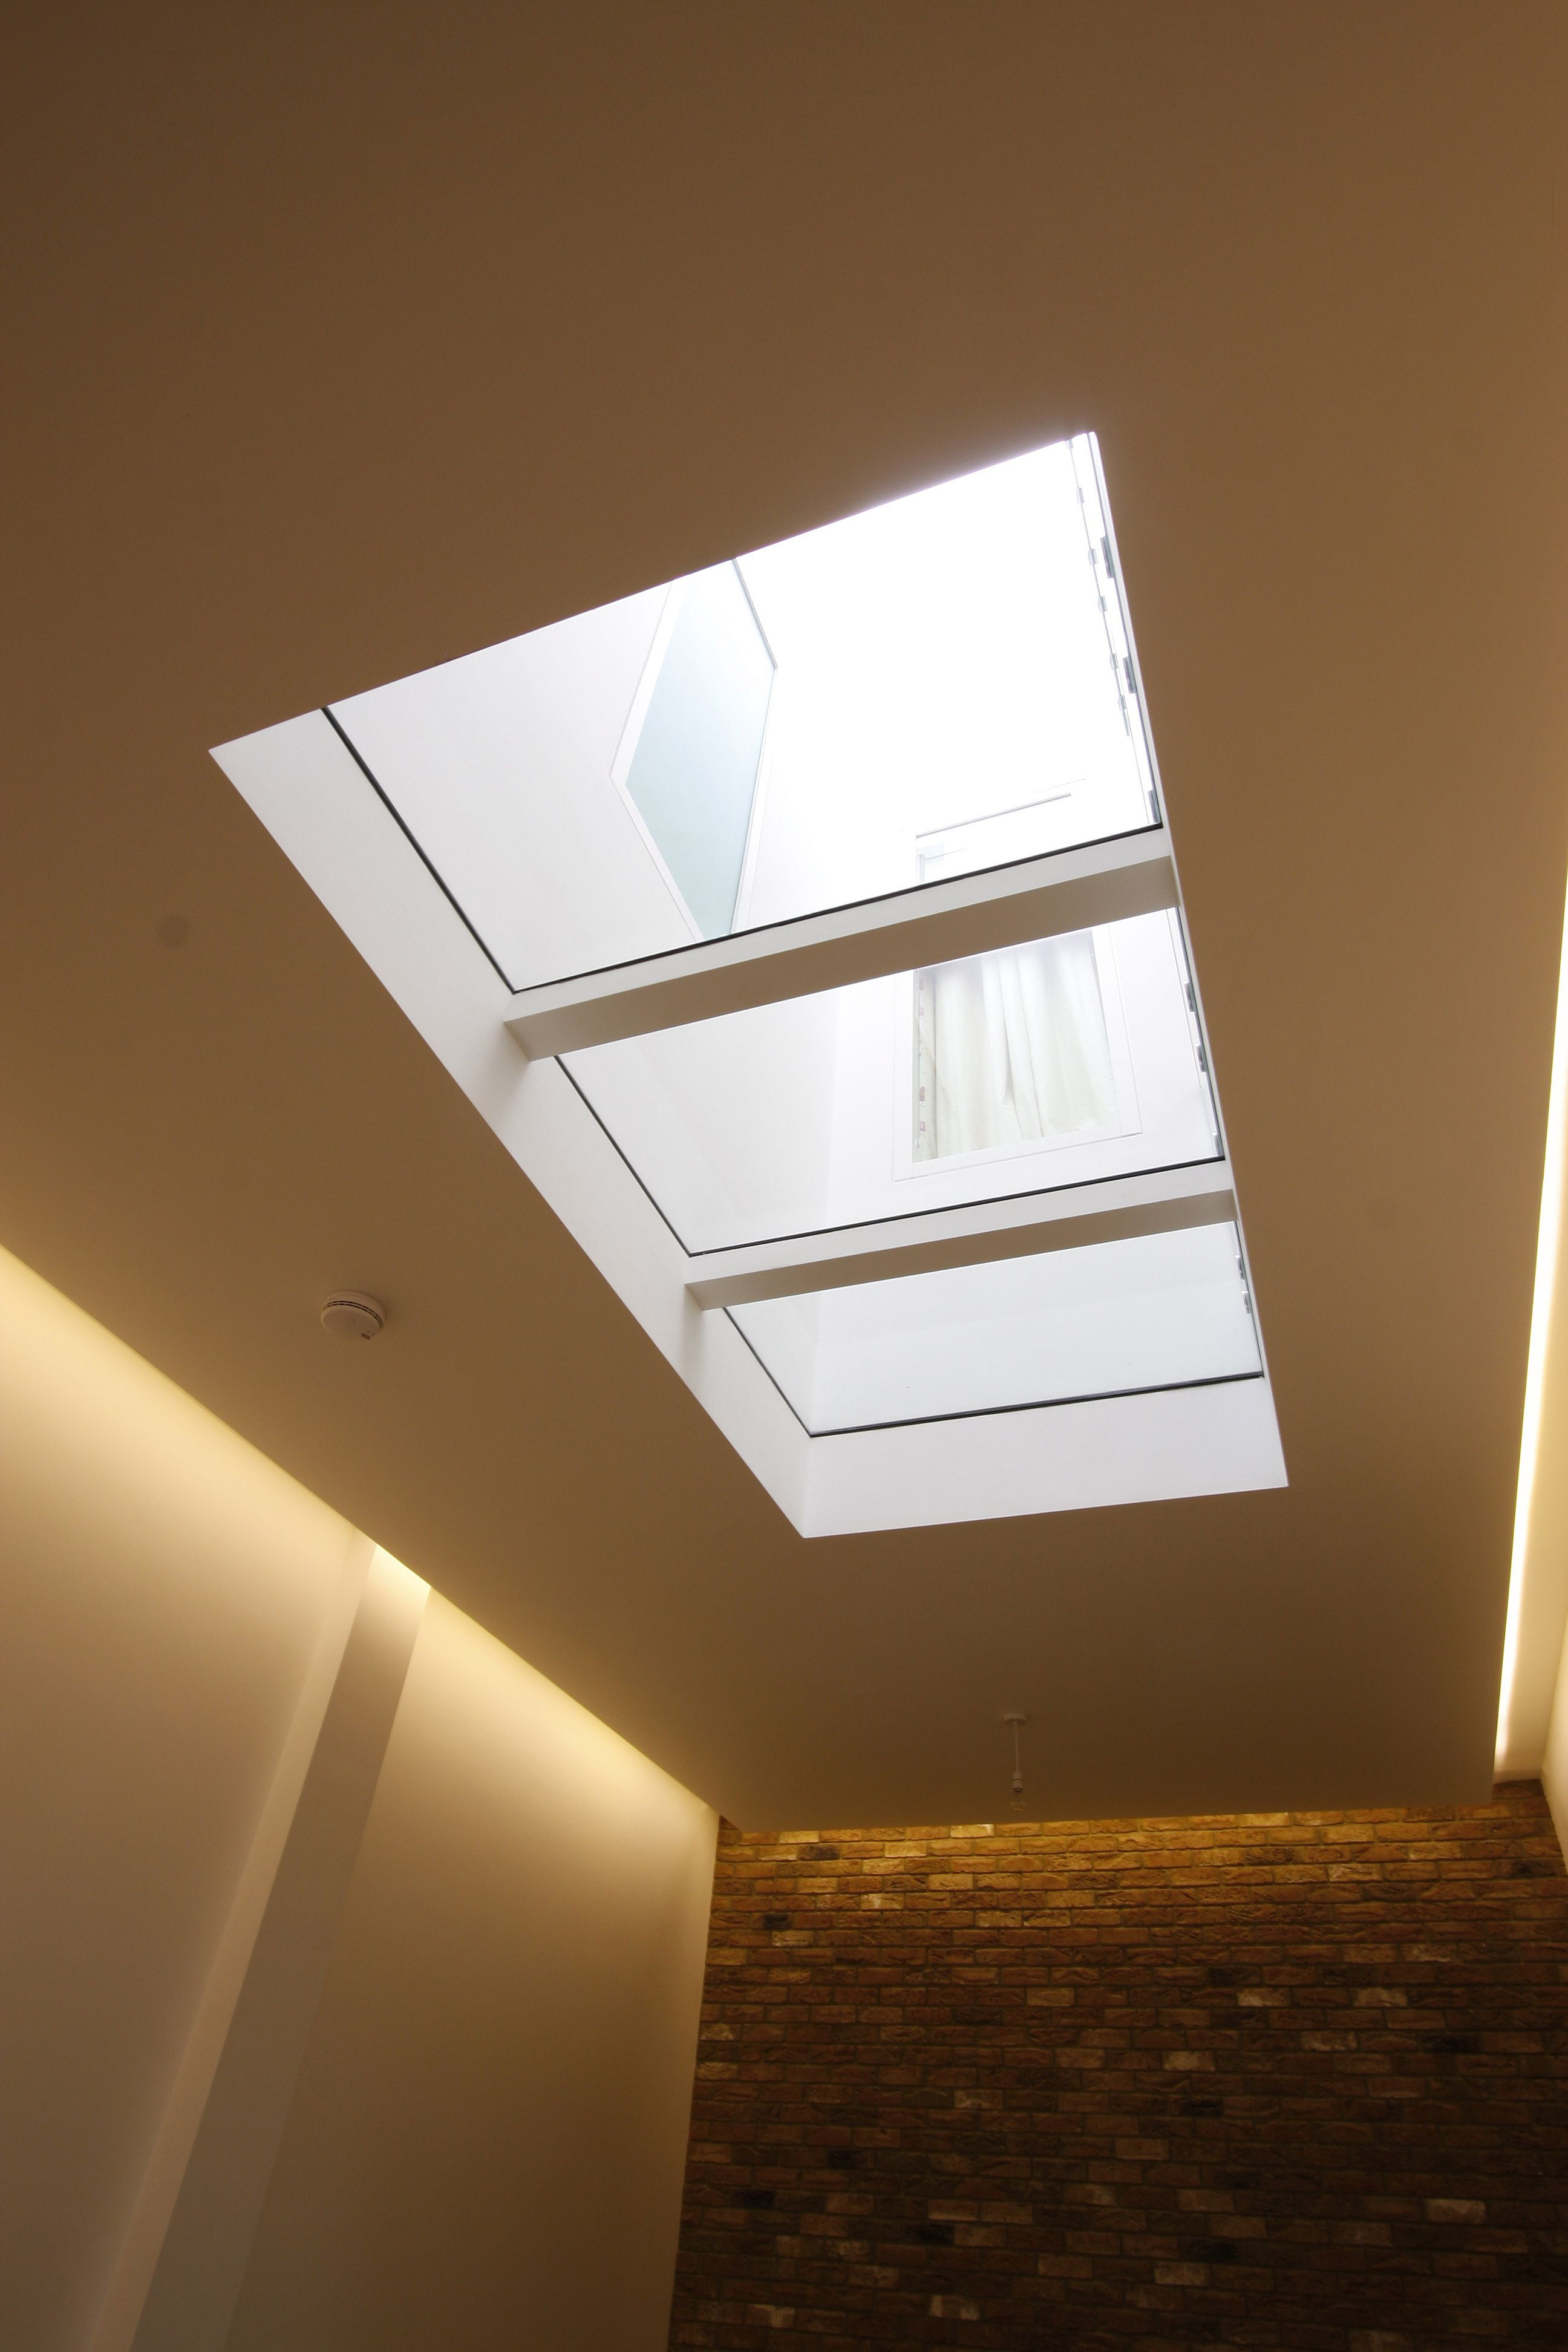 Pin On Project Grosvenor Crescent Mews